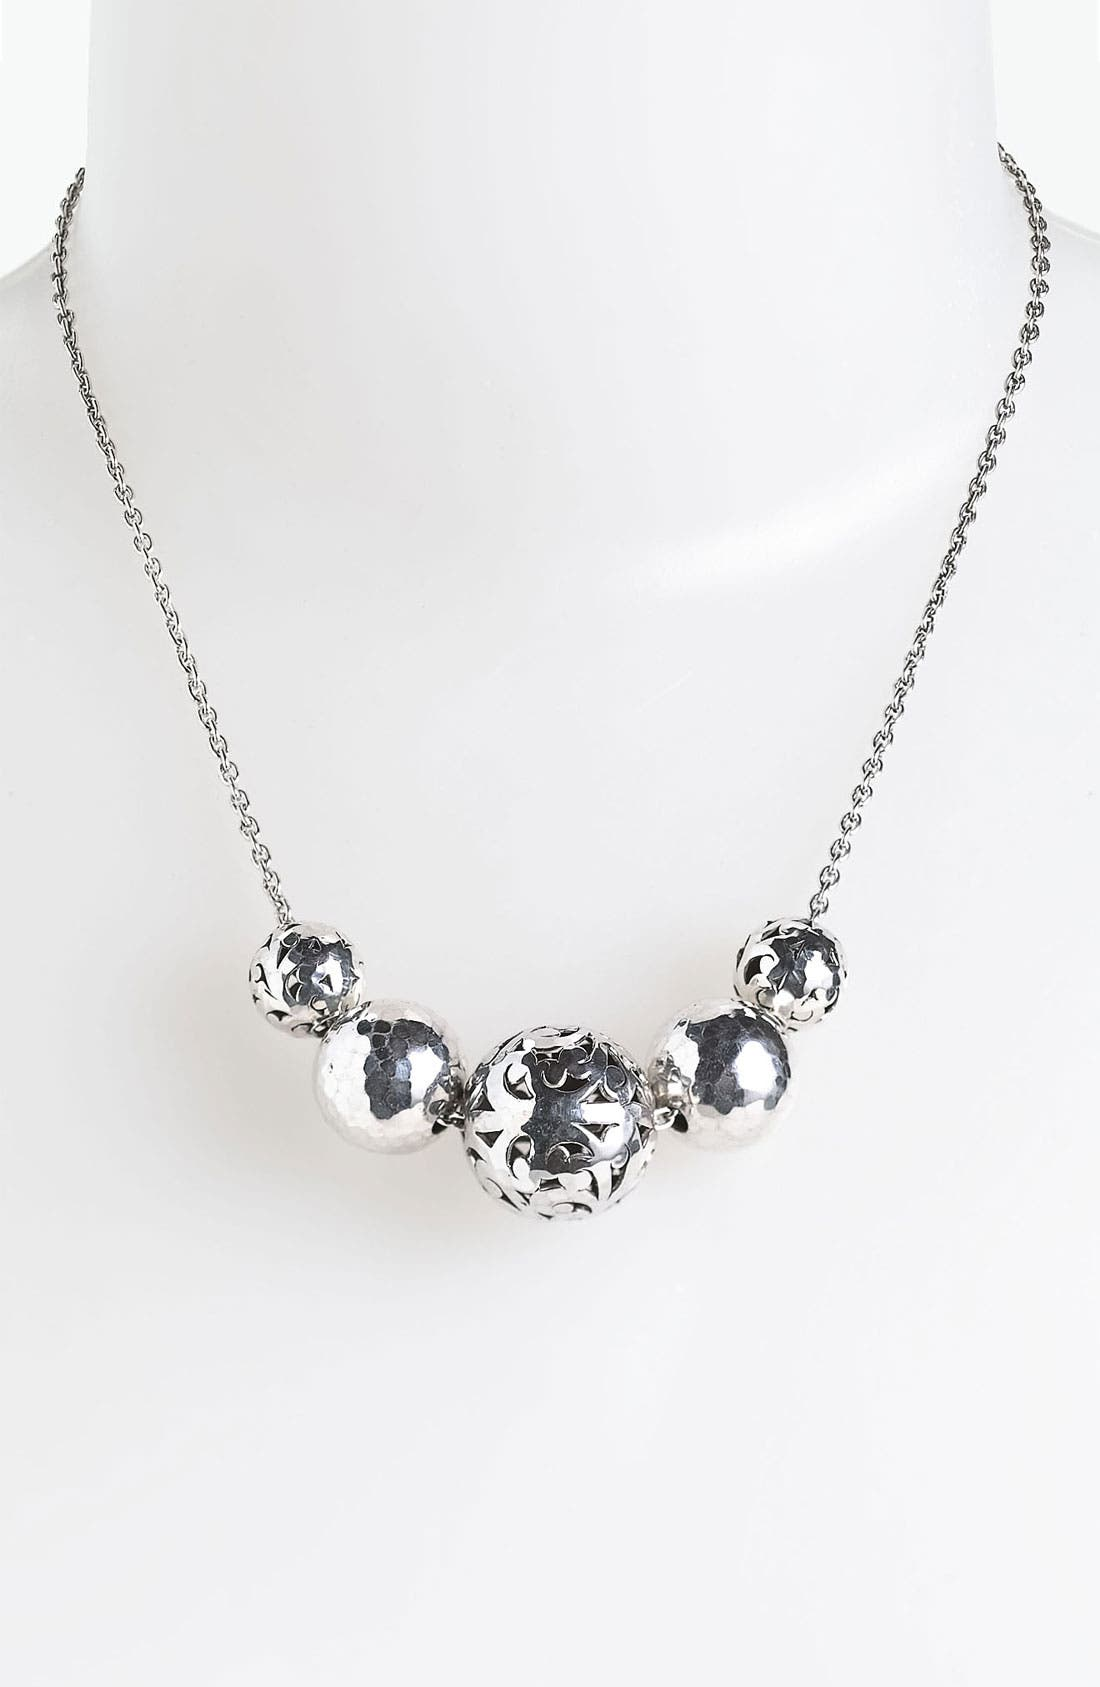 Main Image - Lois Hill 'Ball & Chain' Bead Necklace